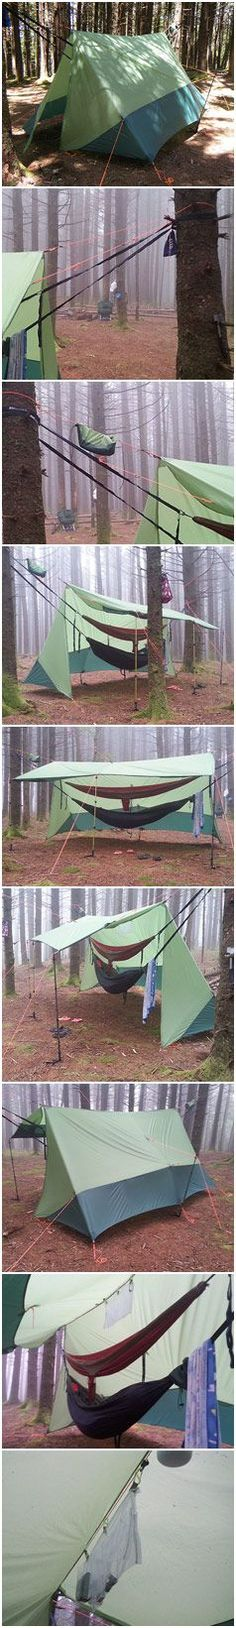 """Being a taller person (6'3"""") I needed a diy hammock tarp that, 1) would set up quickly and easily especially in all seasons, 2) is at least 11' long when completely extended on the ridgeline so hammock ends are completely covered, 3) I can walk/stand unde"""